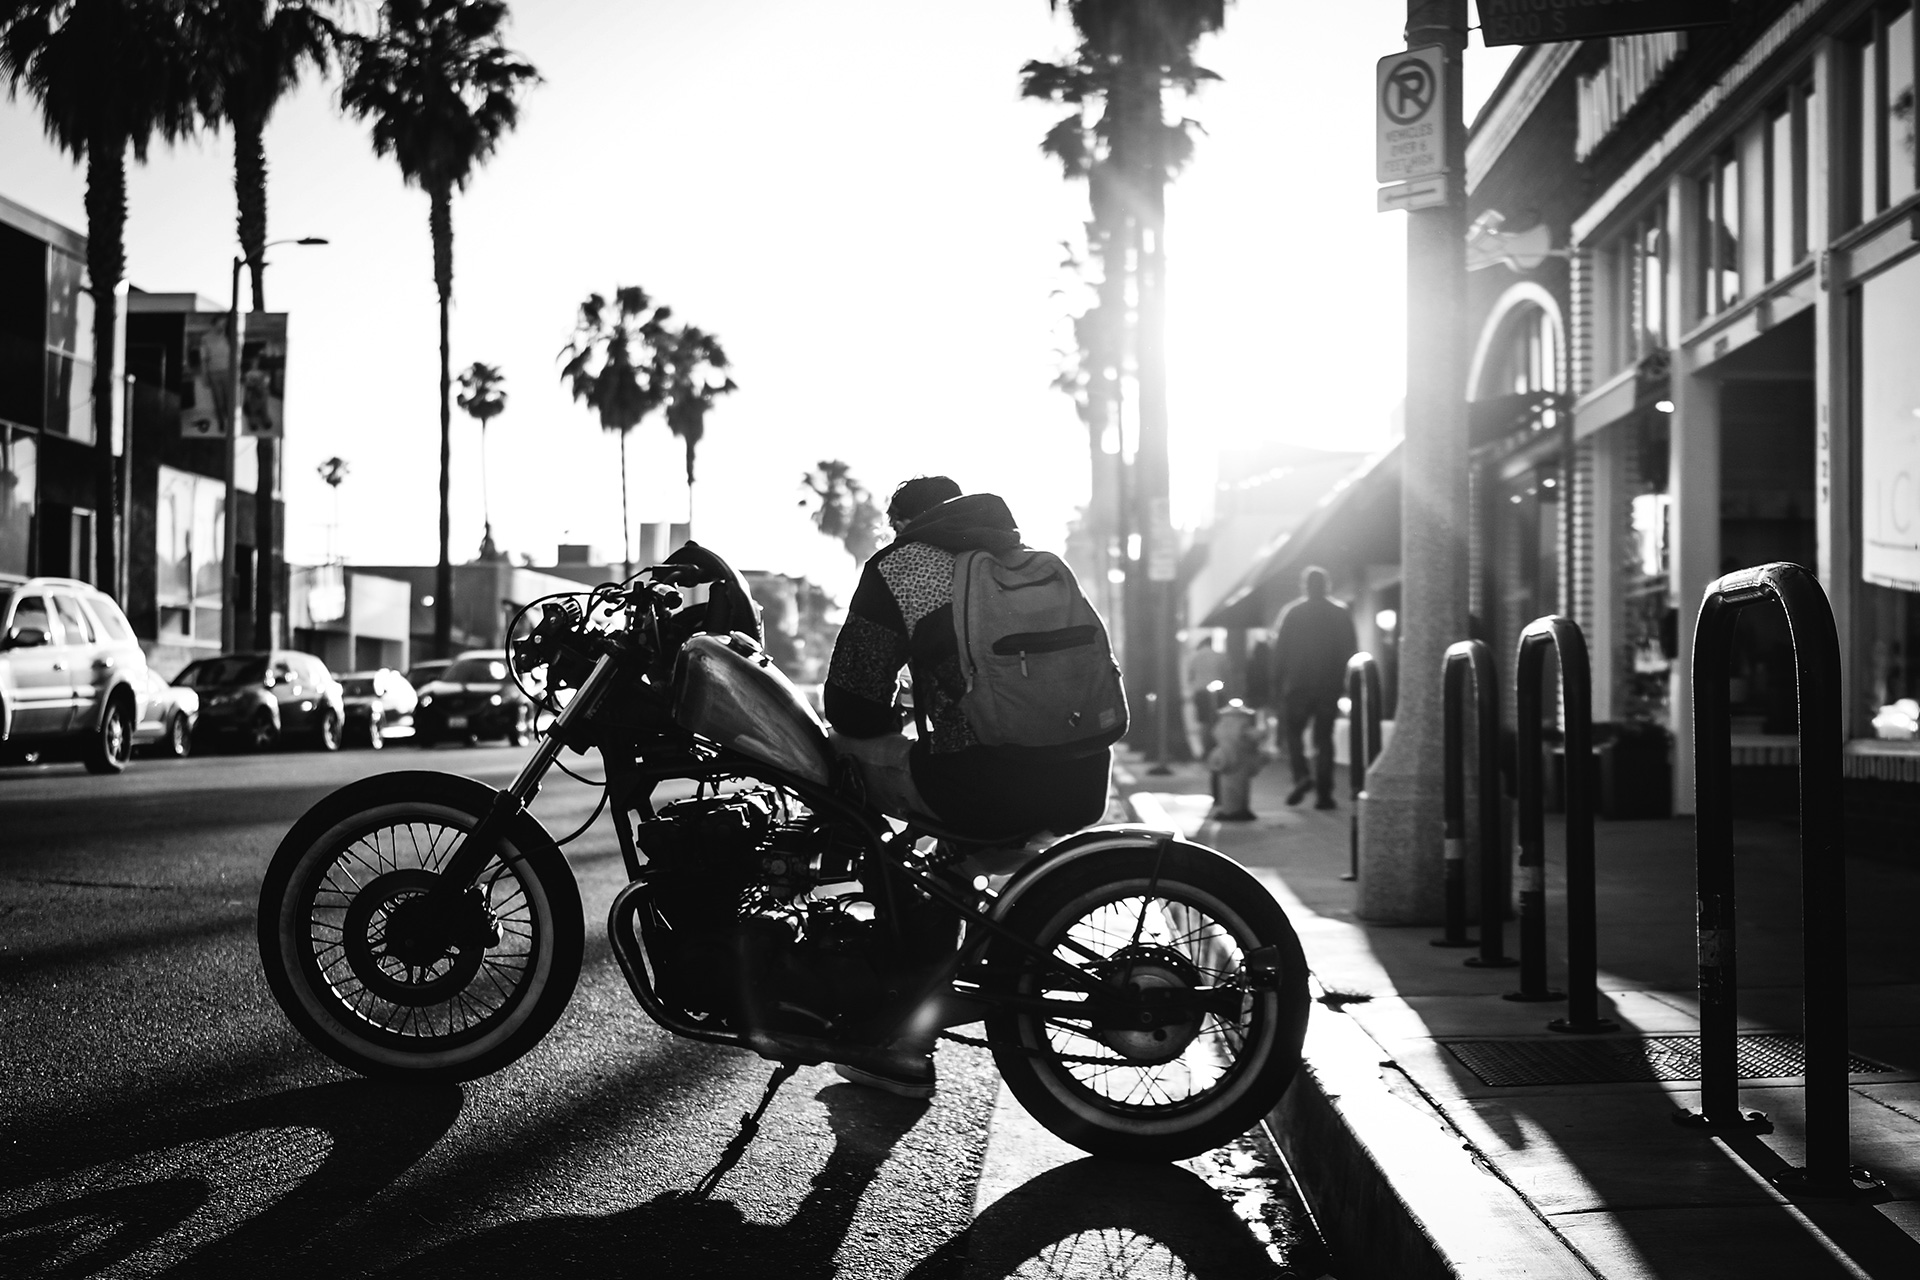 man on motorcycle black and white